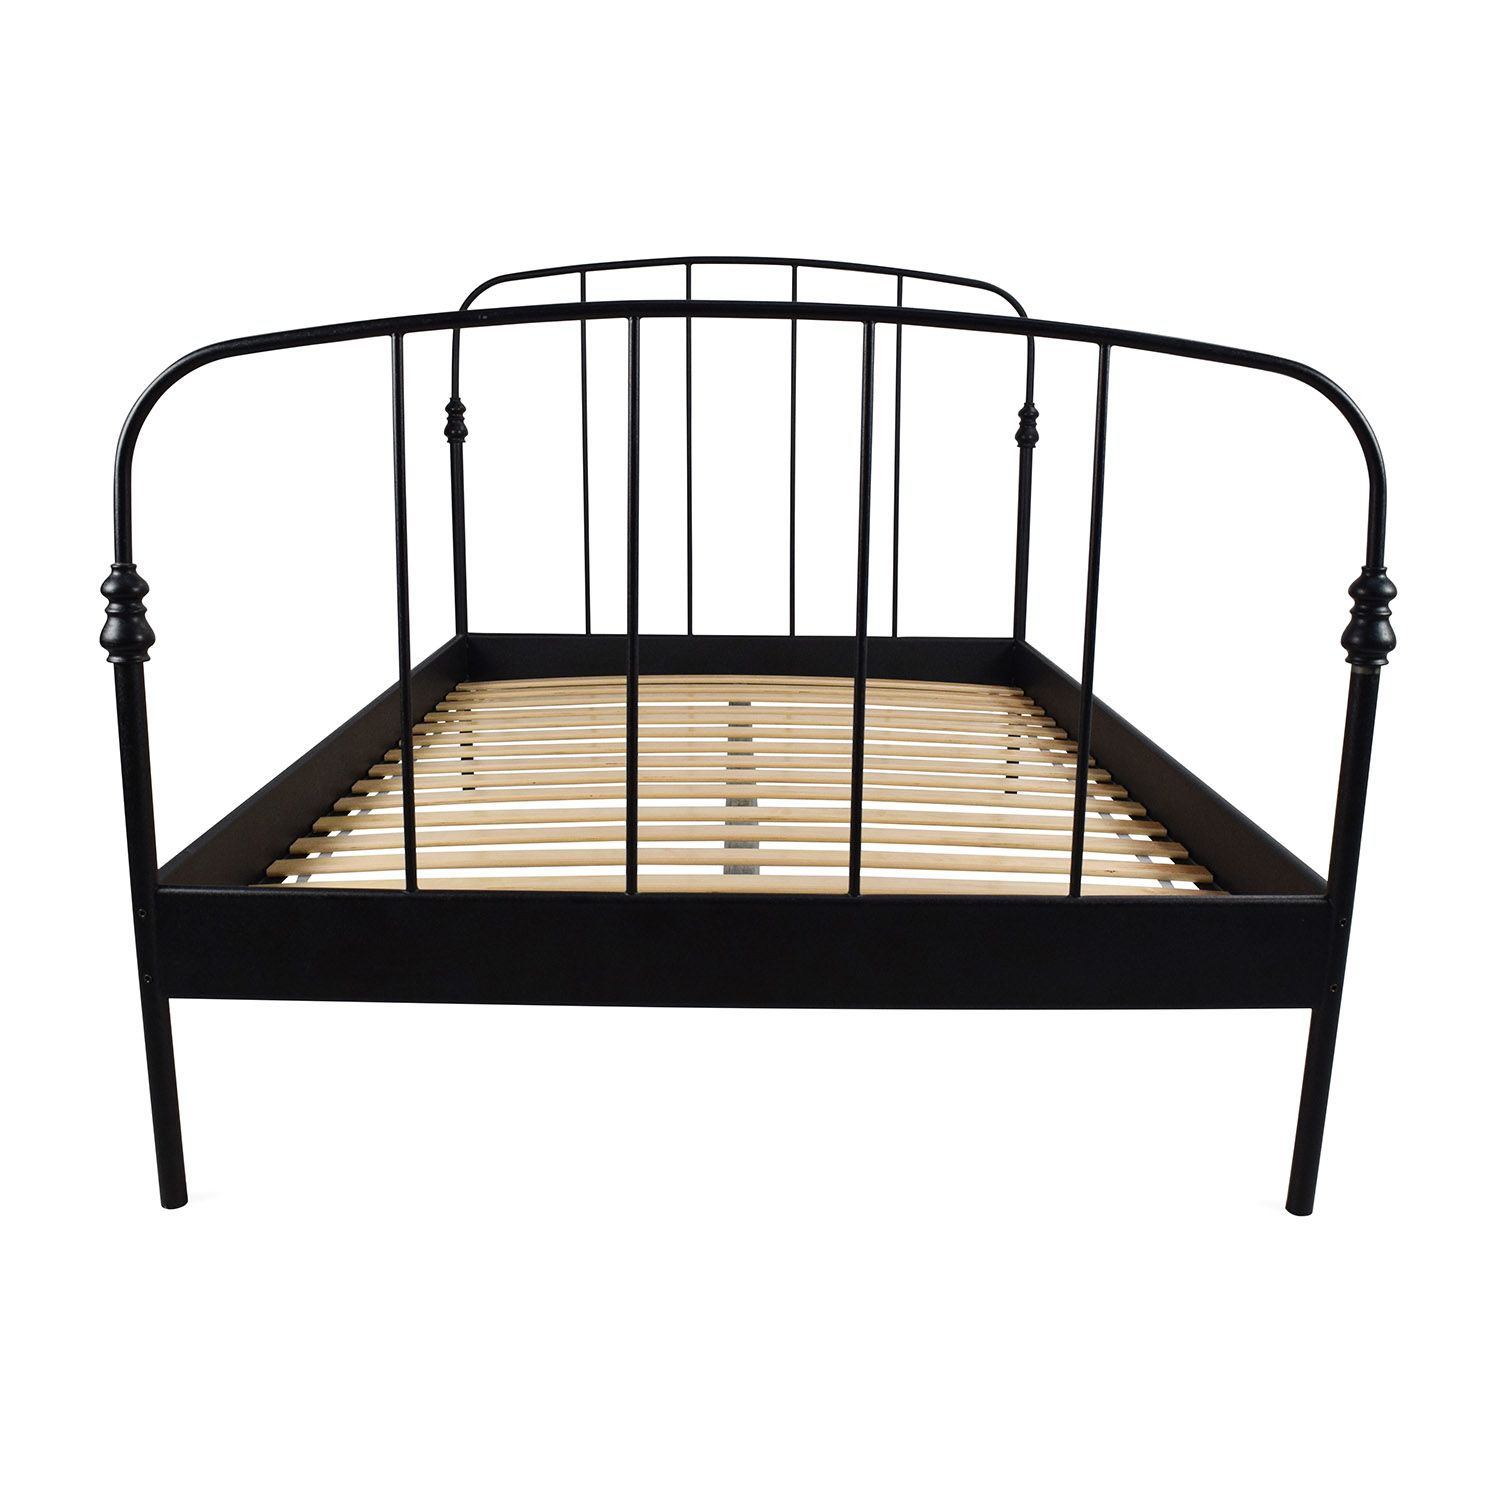 Ikea Svelvik Full Size Black Bed Frame Black Bed Frame Black